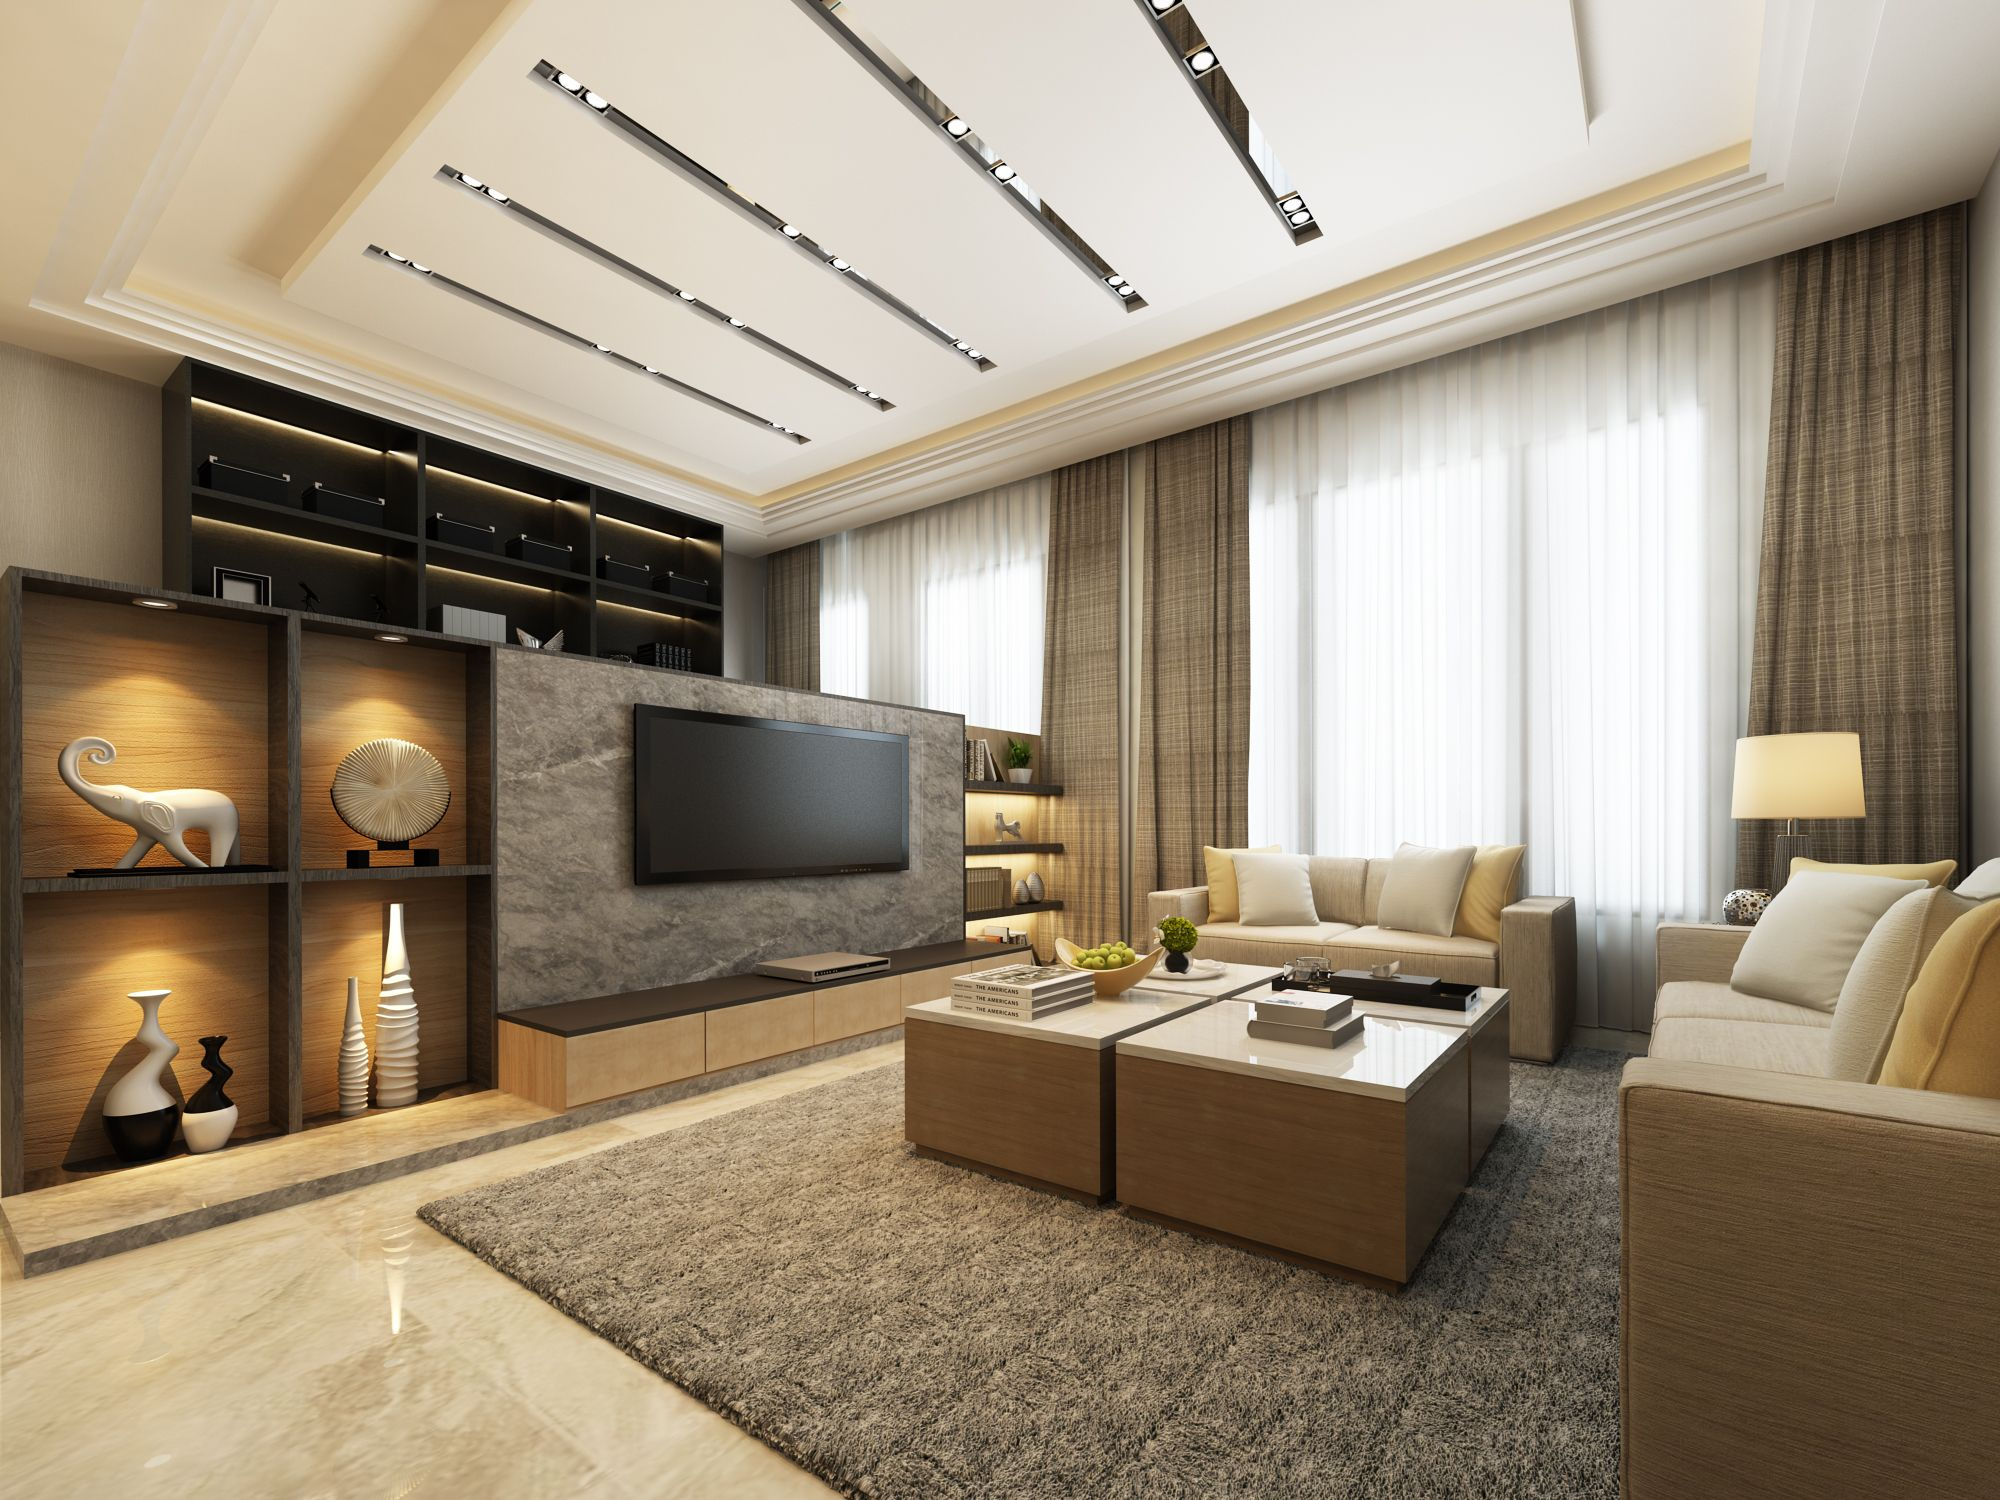 One Of Our Latest Living Room Interior Designs In Istaging You Can Preview It I Latest Living Room Interior Design Interior Design Interior Design Living Room